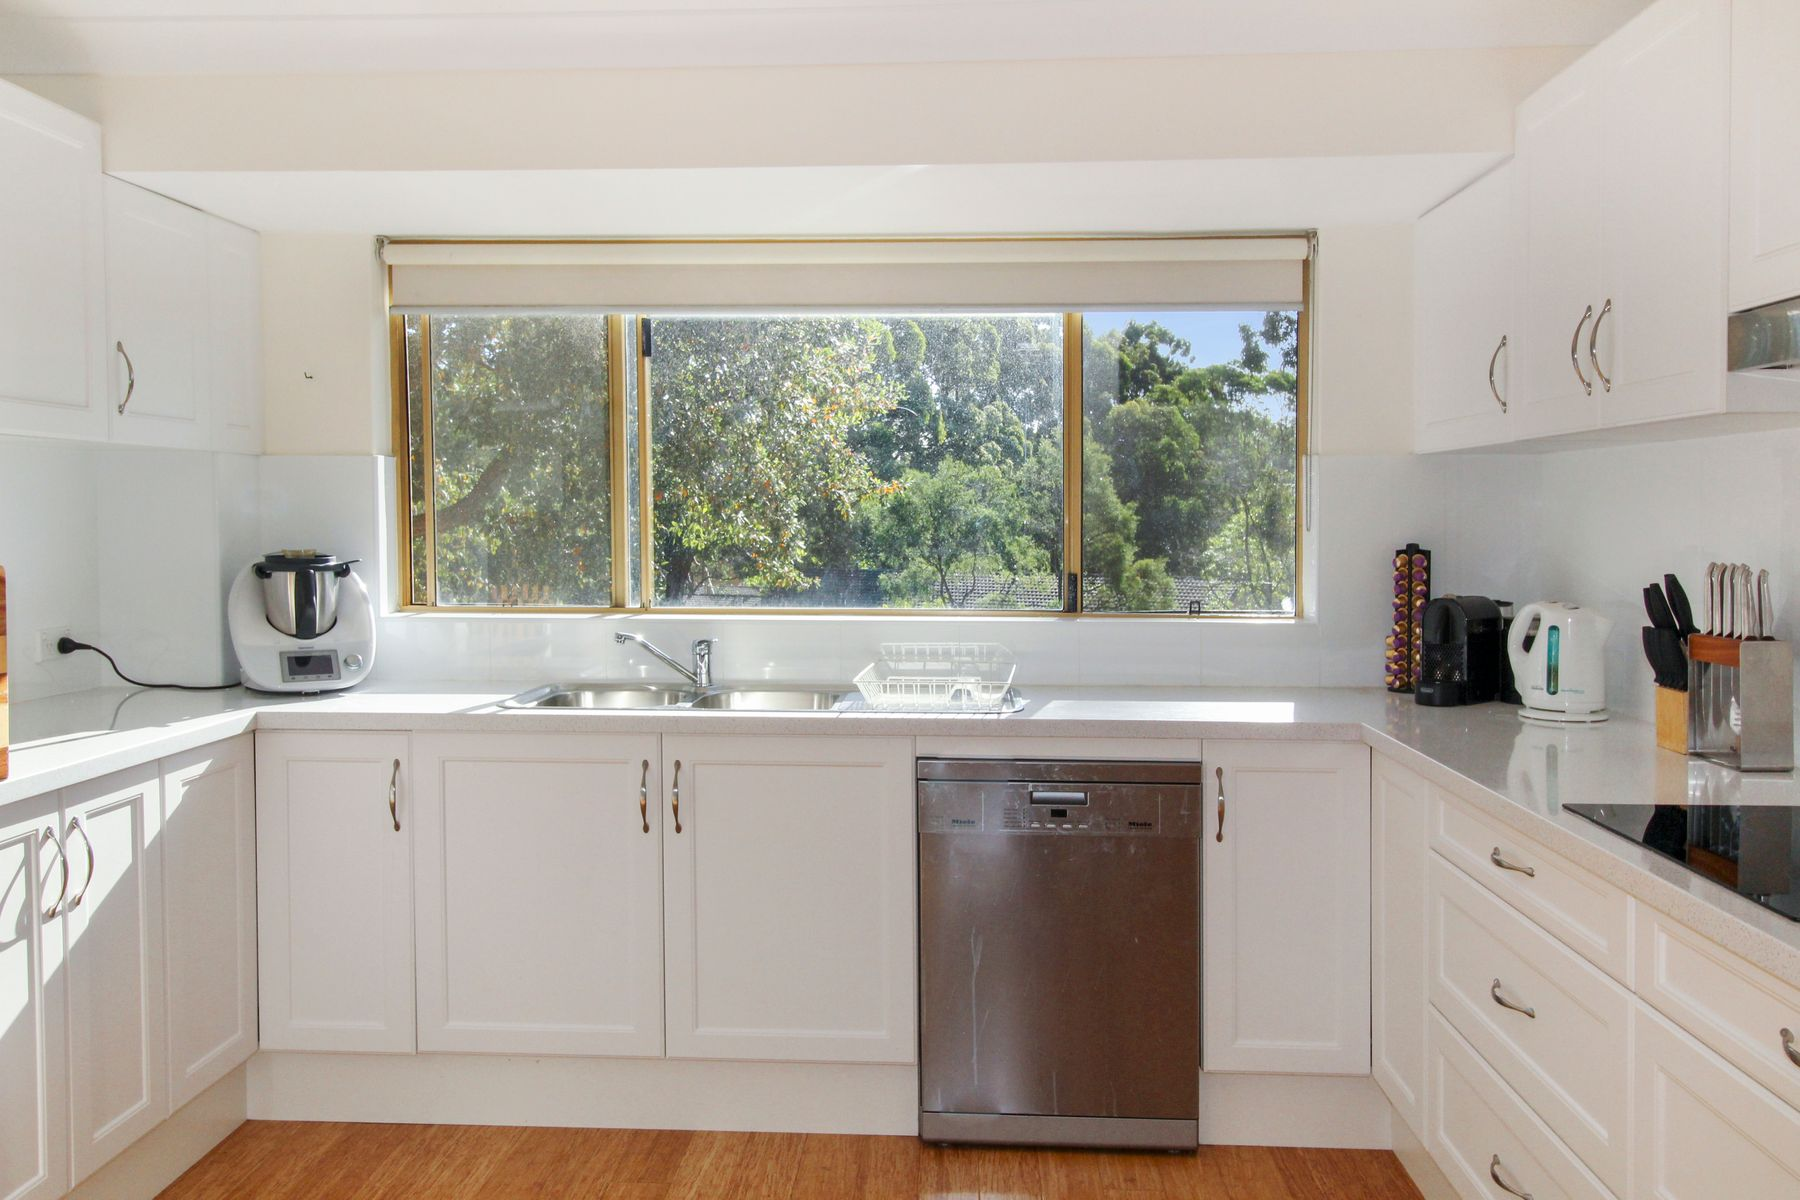 29/1-15 Tuckwell Place, Macquarie Park, NSW 2113